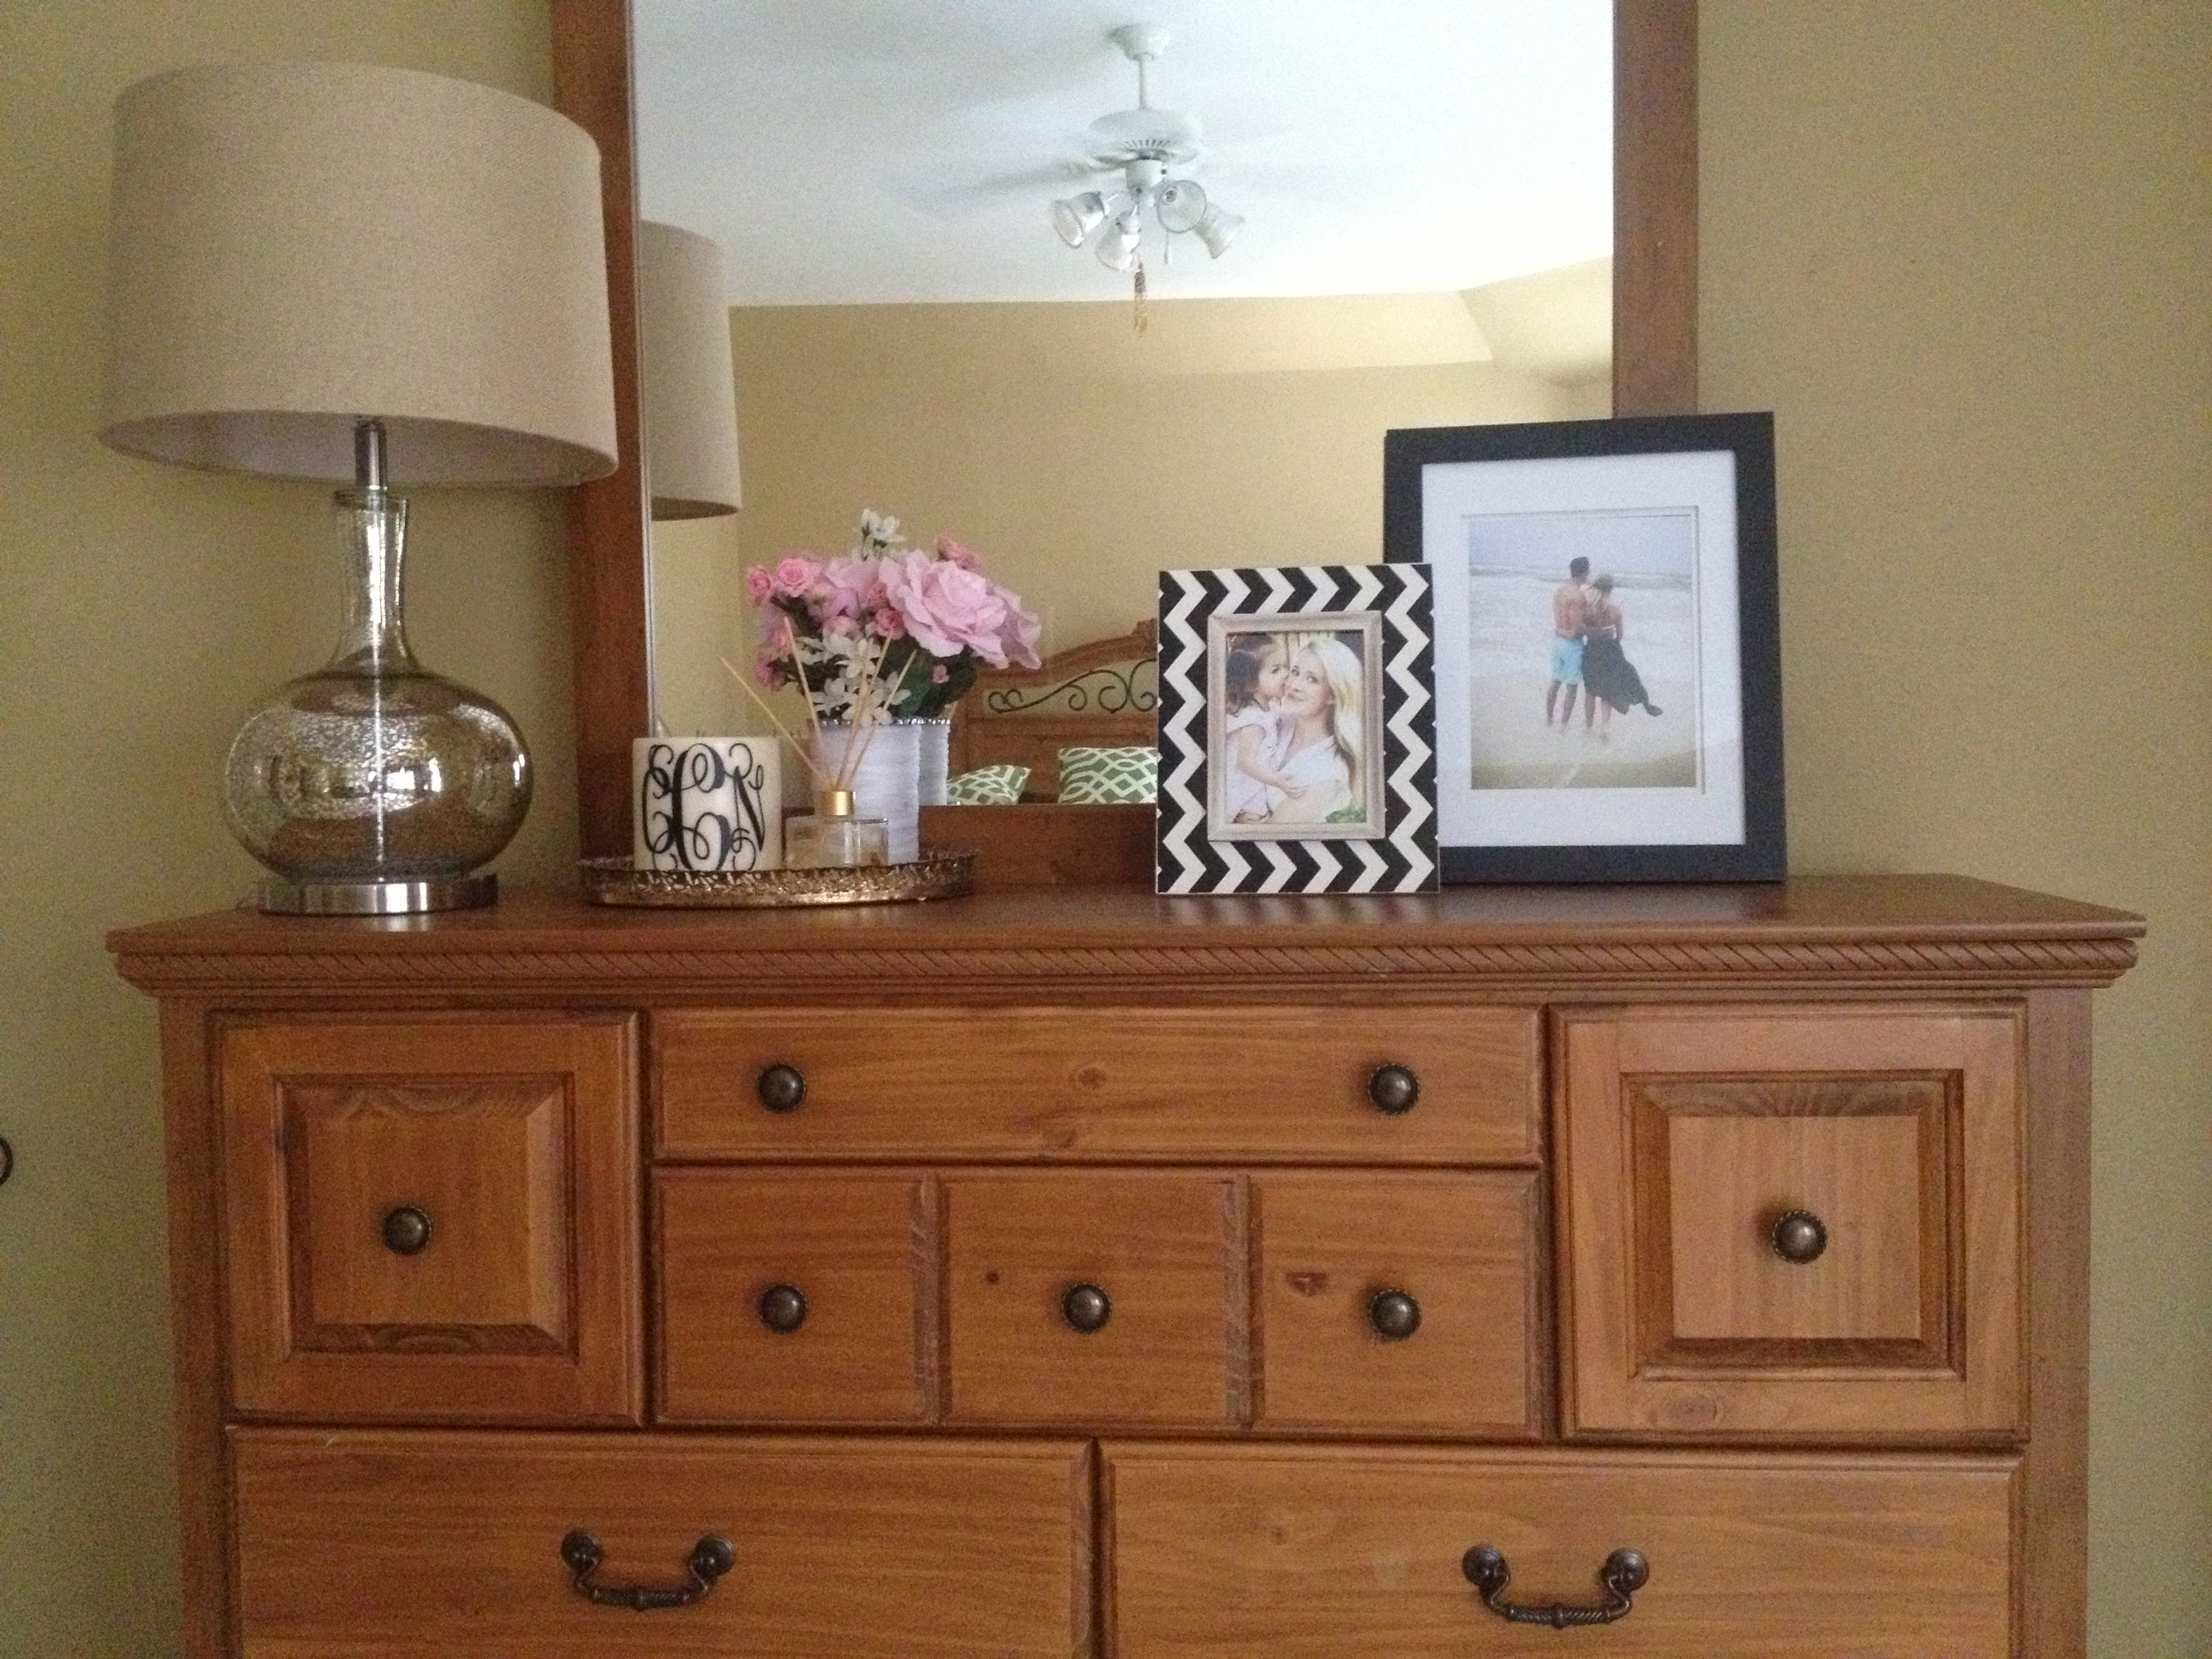 Dresser decor mybedroom no place like home Pinterest